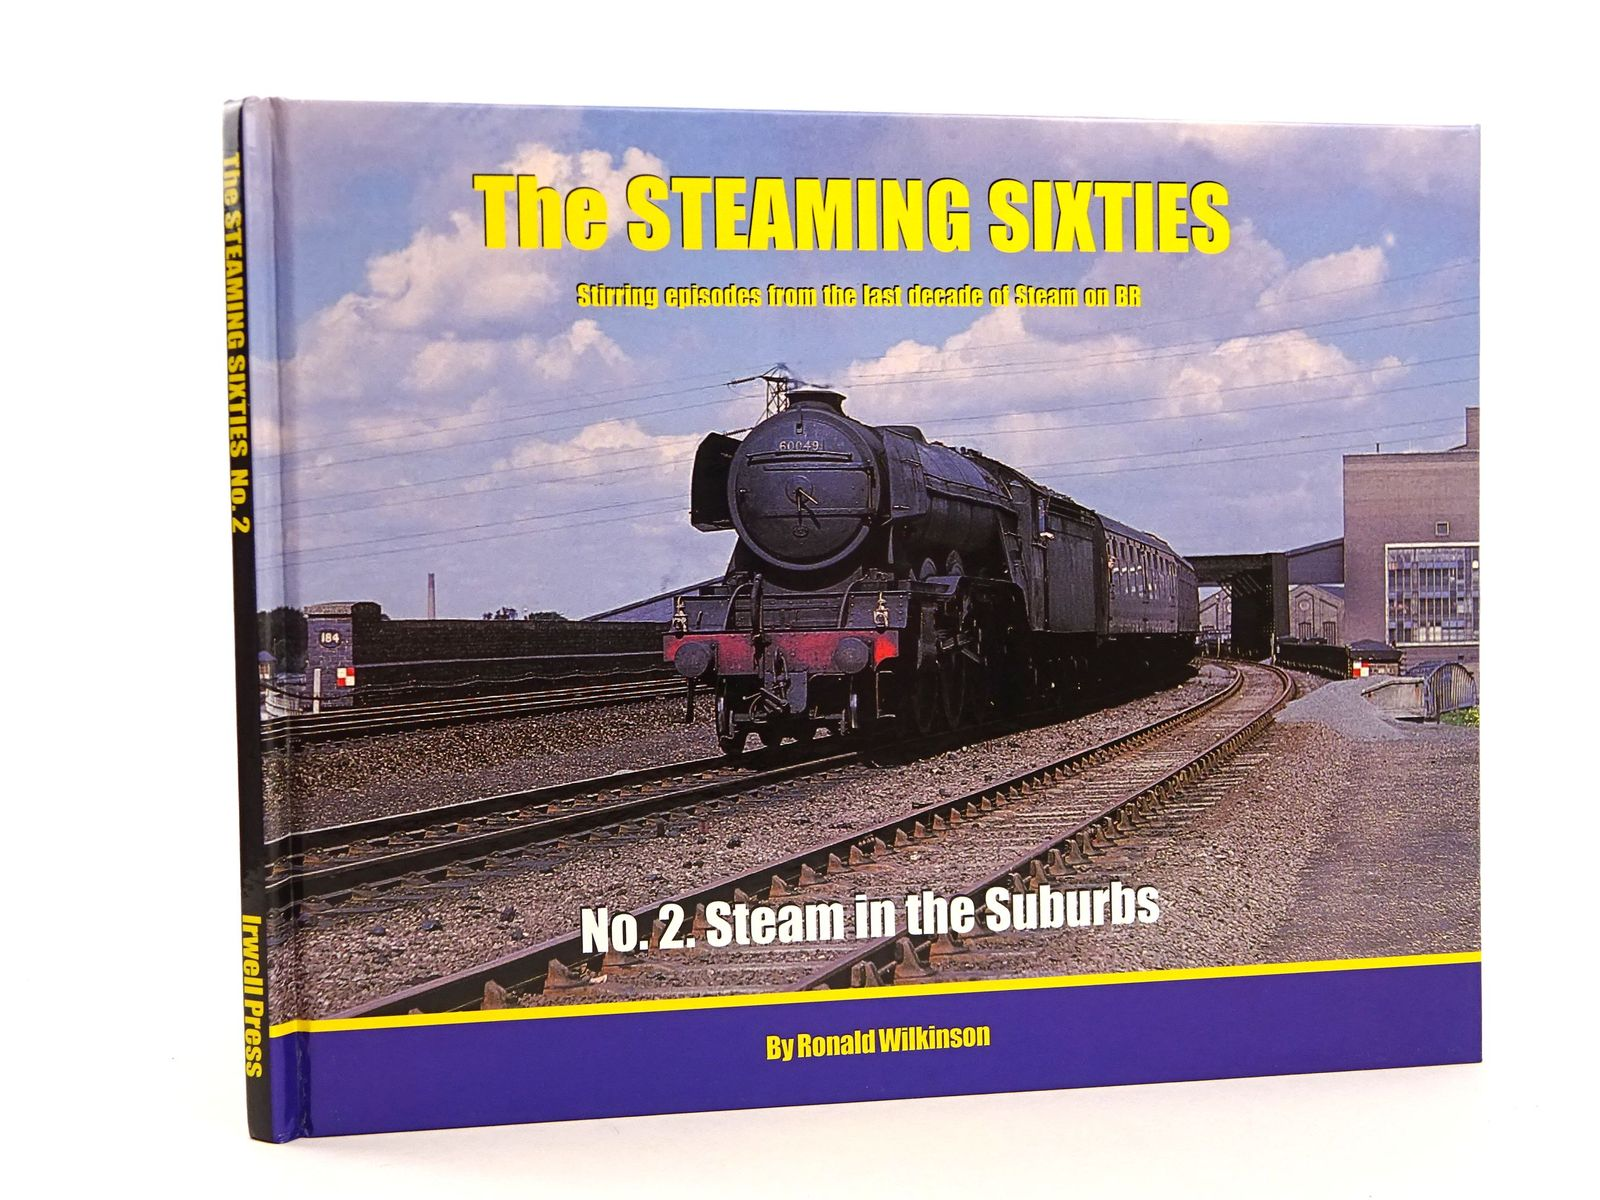 Photo of THE STEAMING SIXTIES: STIRRING EPISODES FROM THE LAST DECADE OF STEAM ON BR 2. STEAM IN THE SUBURBS written by Wilkinson, Ronald published by Irwell Press (STOCK CODE: 1818145)  for sale by Stella & Rose's Books